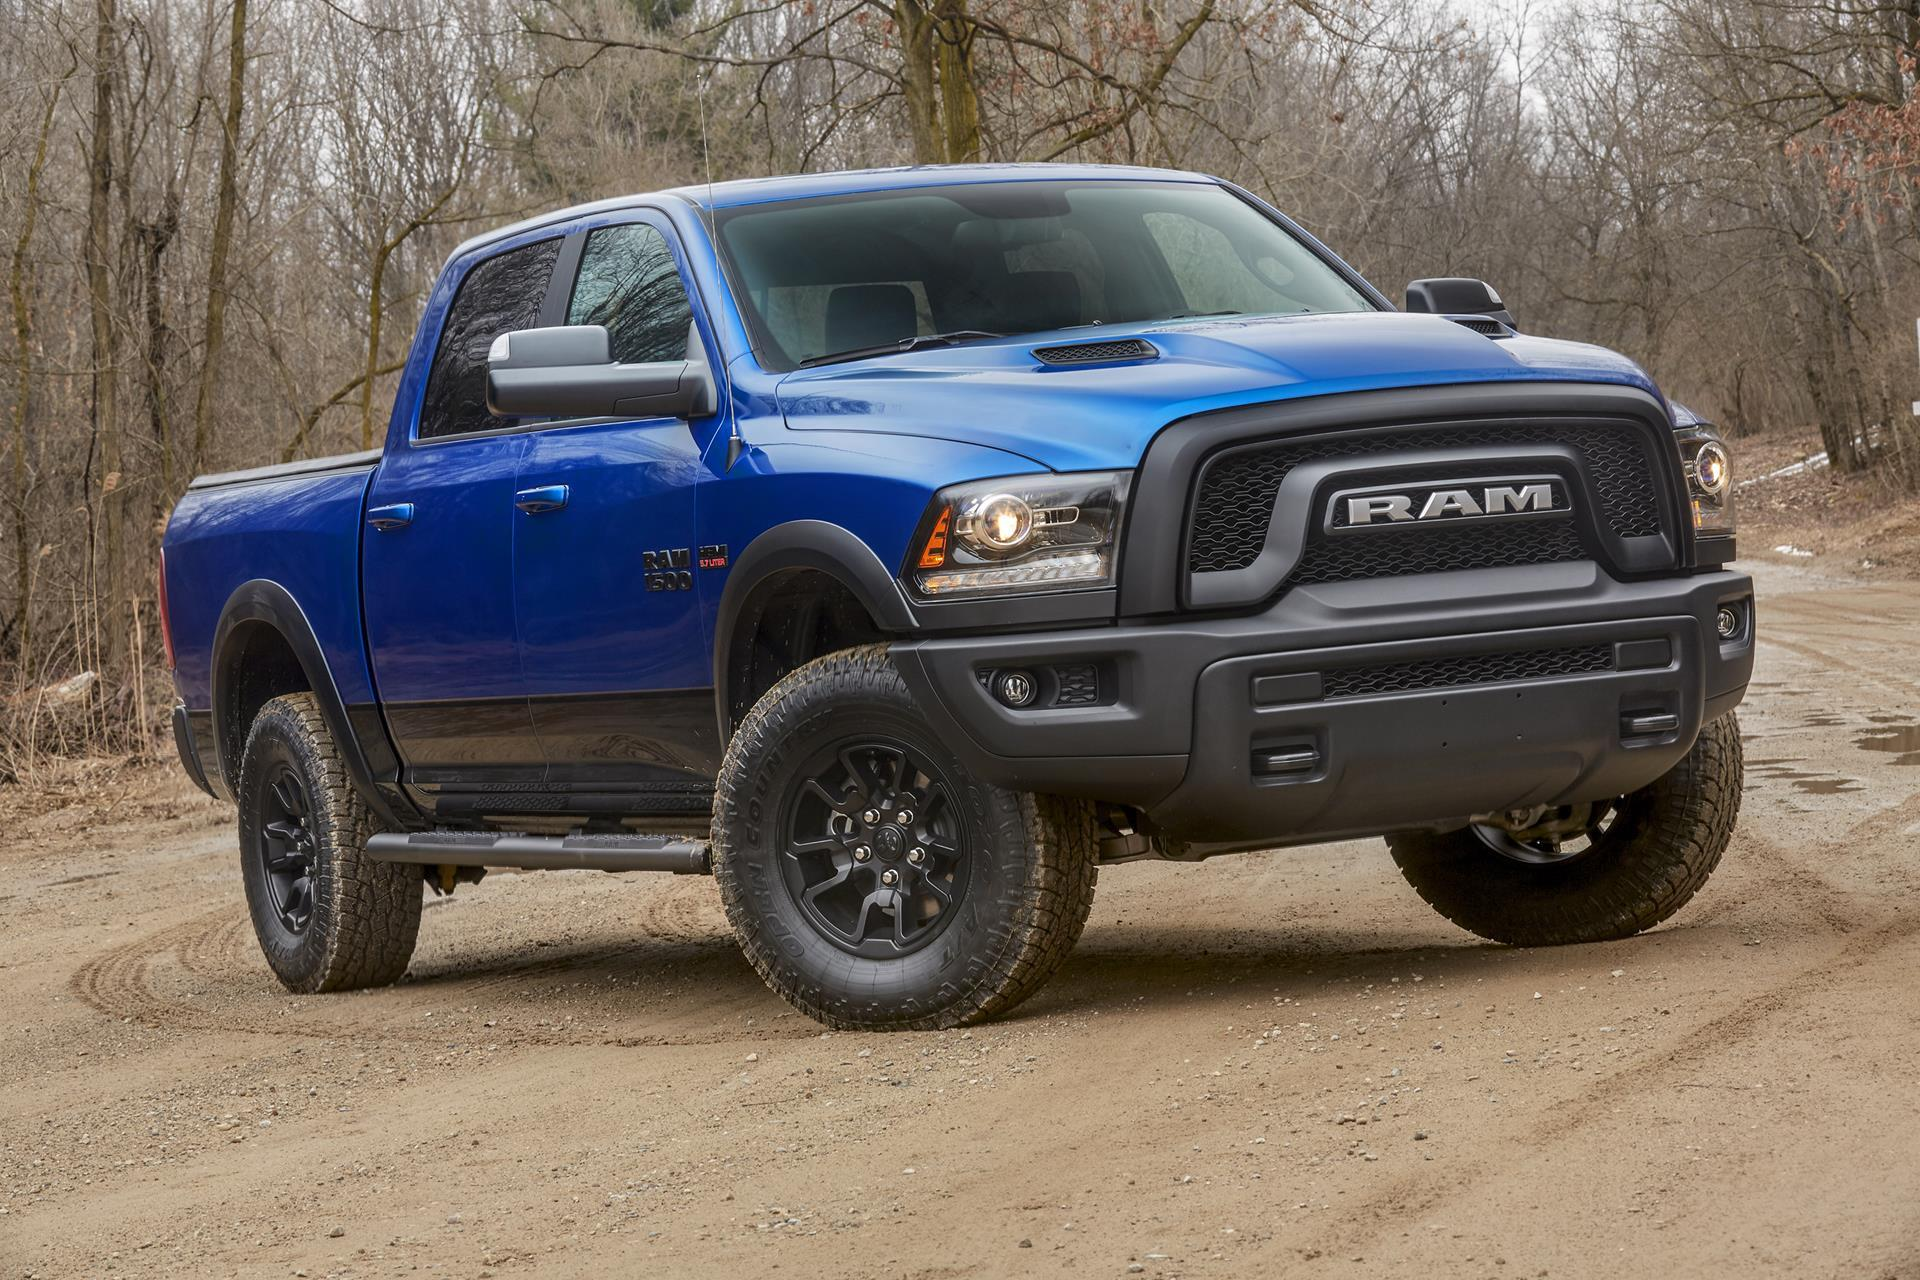 2017 ram 1500 rebel blue streak technical specifications and data engine dimensions and. Black Bedroom Furniture Sets. Home Design Ideas